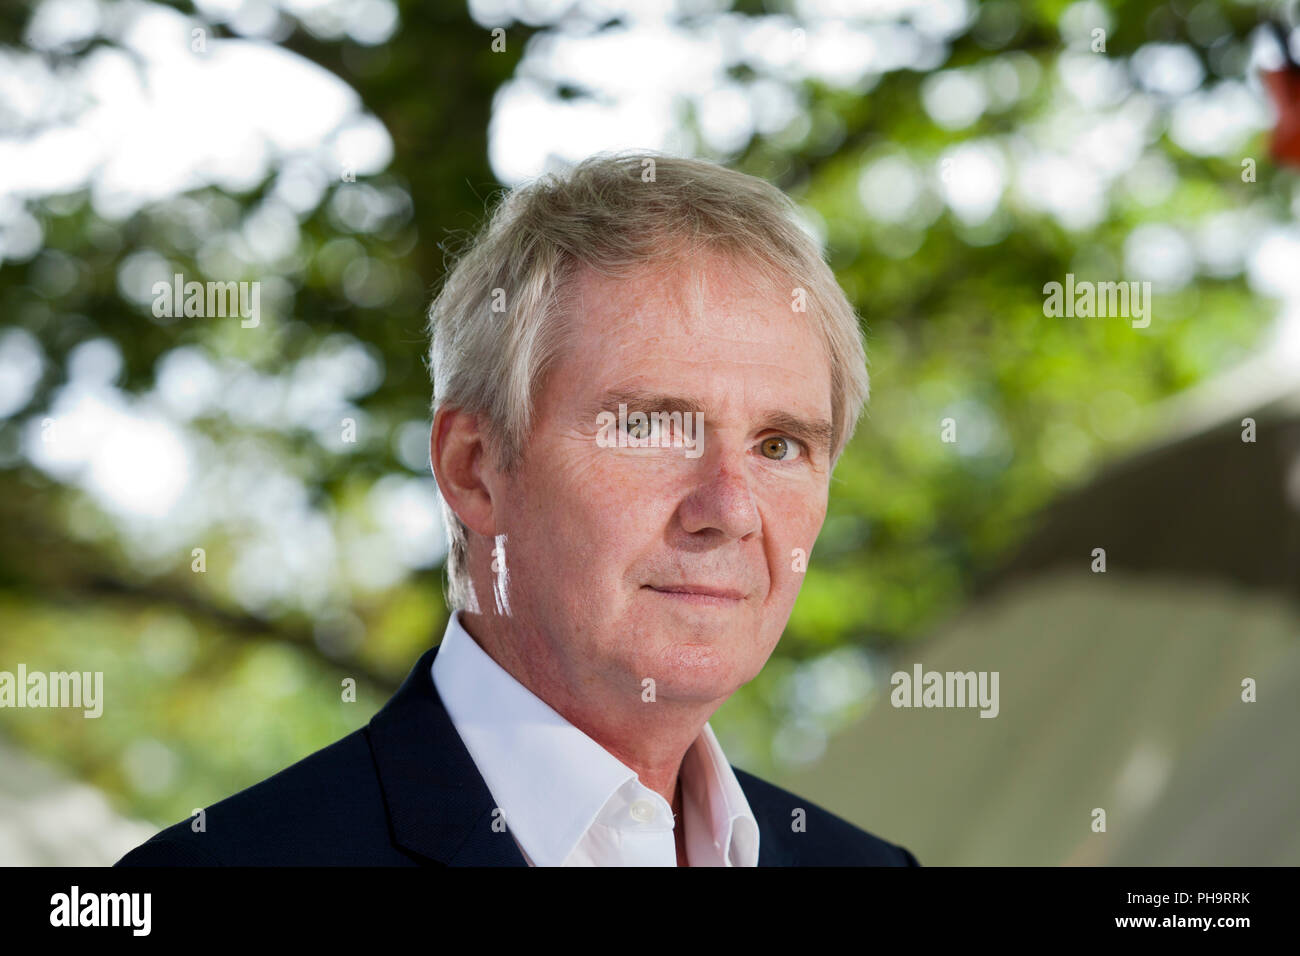 Edinburgh, UK. 24th August, 2018. Sir Nigel Richard Shadbolt FRS FREng CITP CEng FBCS CPsychol is Principal of Jesus College, Oxford, and Professorial Research Fellow in the Department of Computer Science, University of Oxford. Pictured at the Edinburgh International Book Festival. Edinburgh, Scotland.  Picture by Gary Doak / Alamy Live News - Stock Image